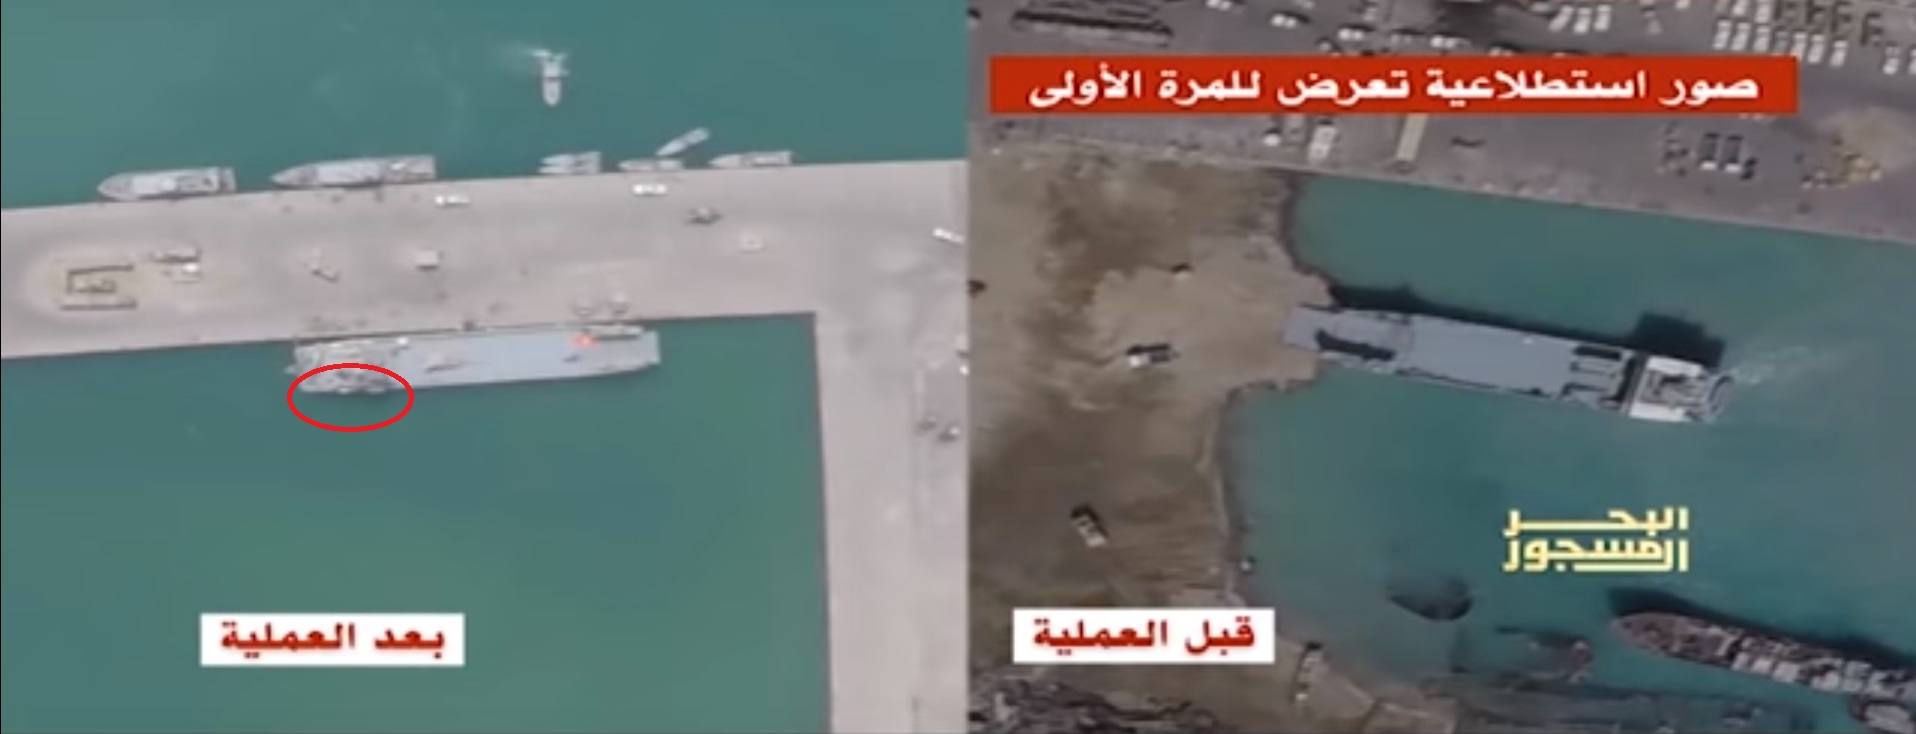 Houthis Reveal New Information About Their Naval Forces (Video)